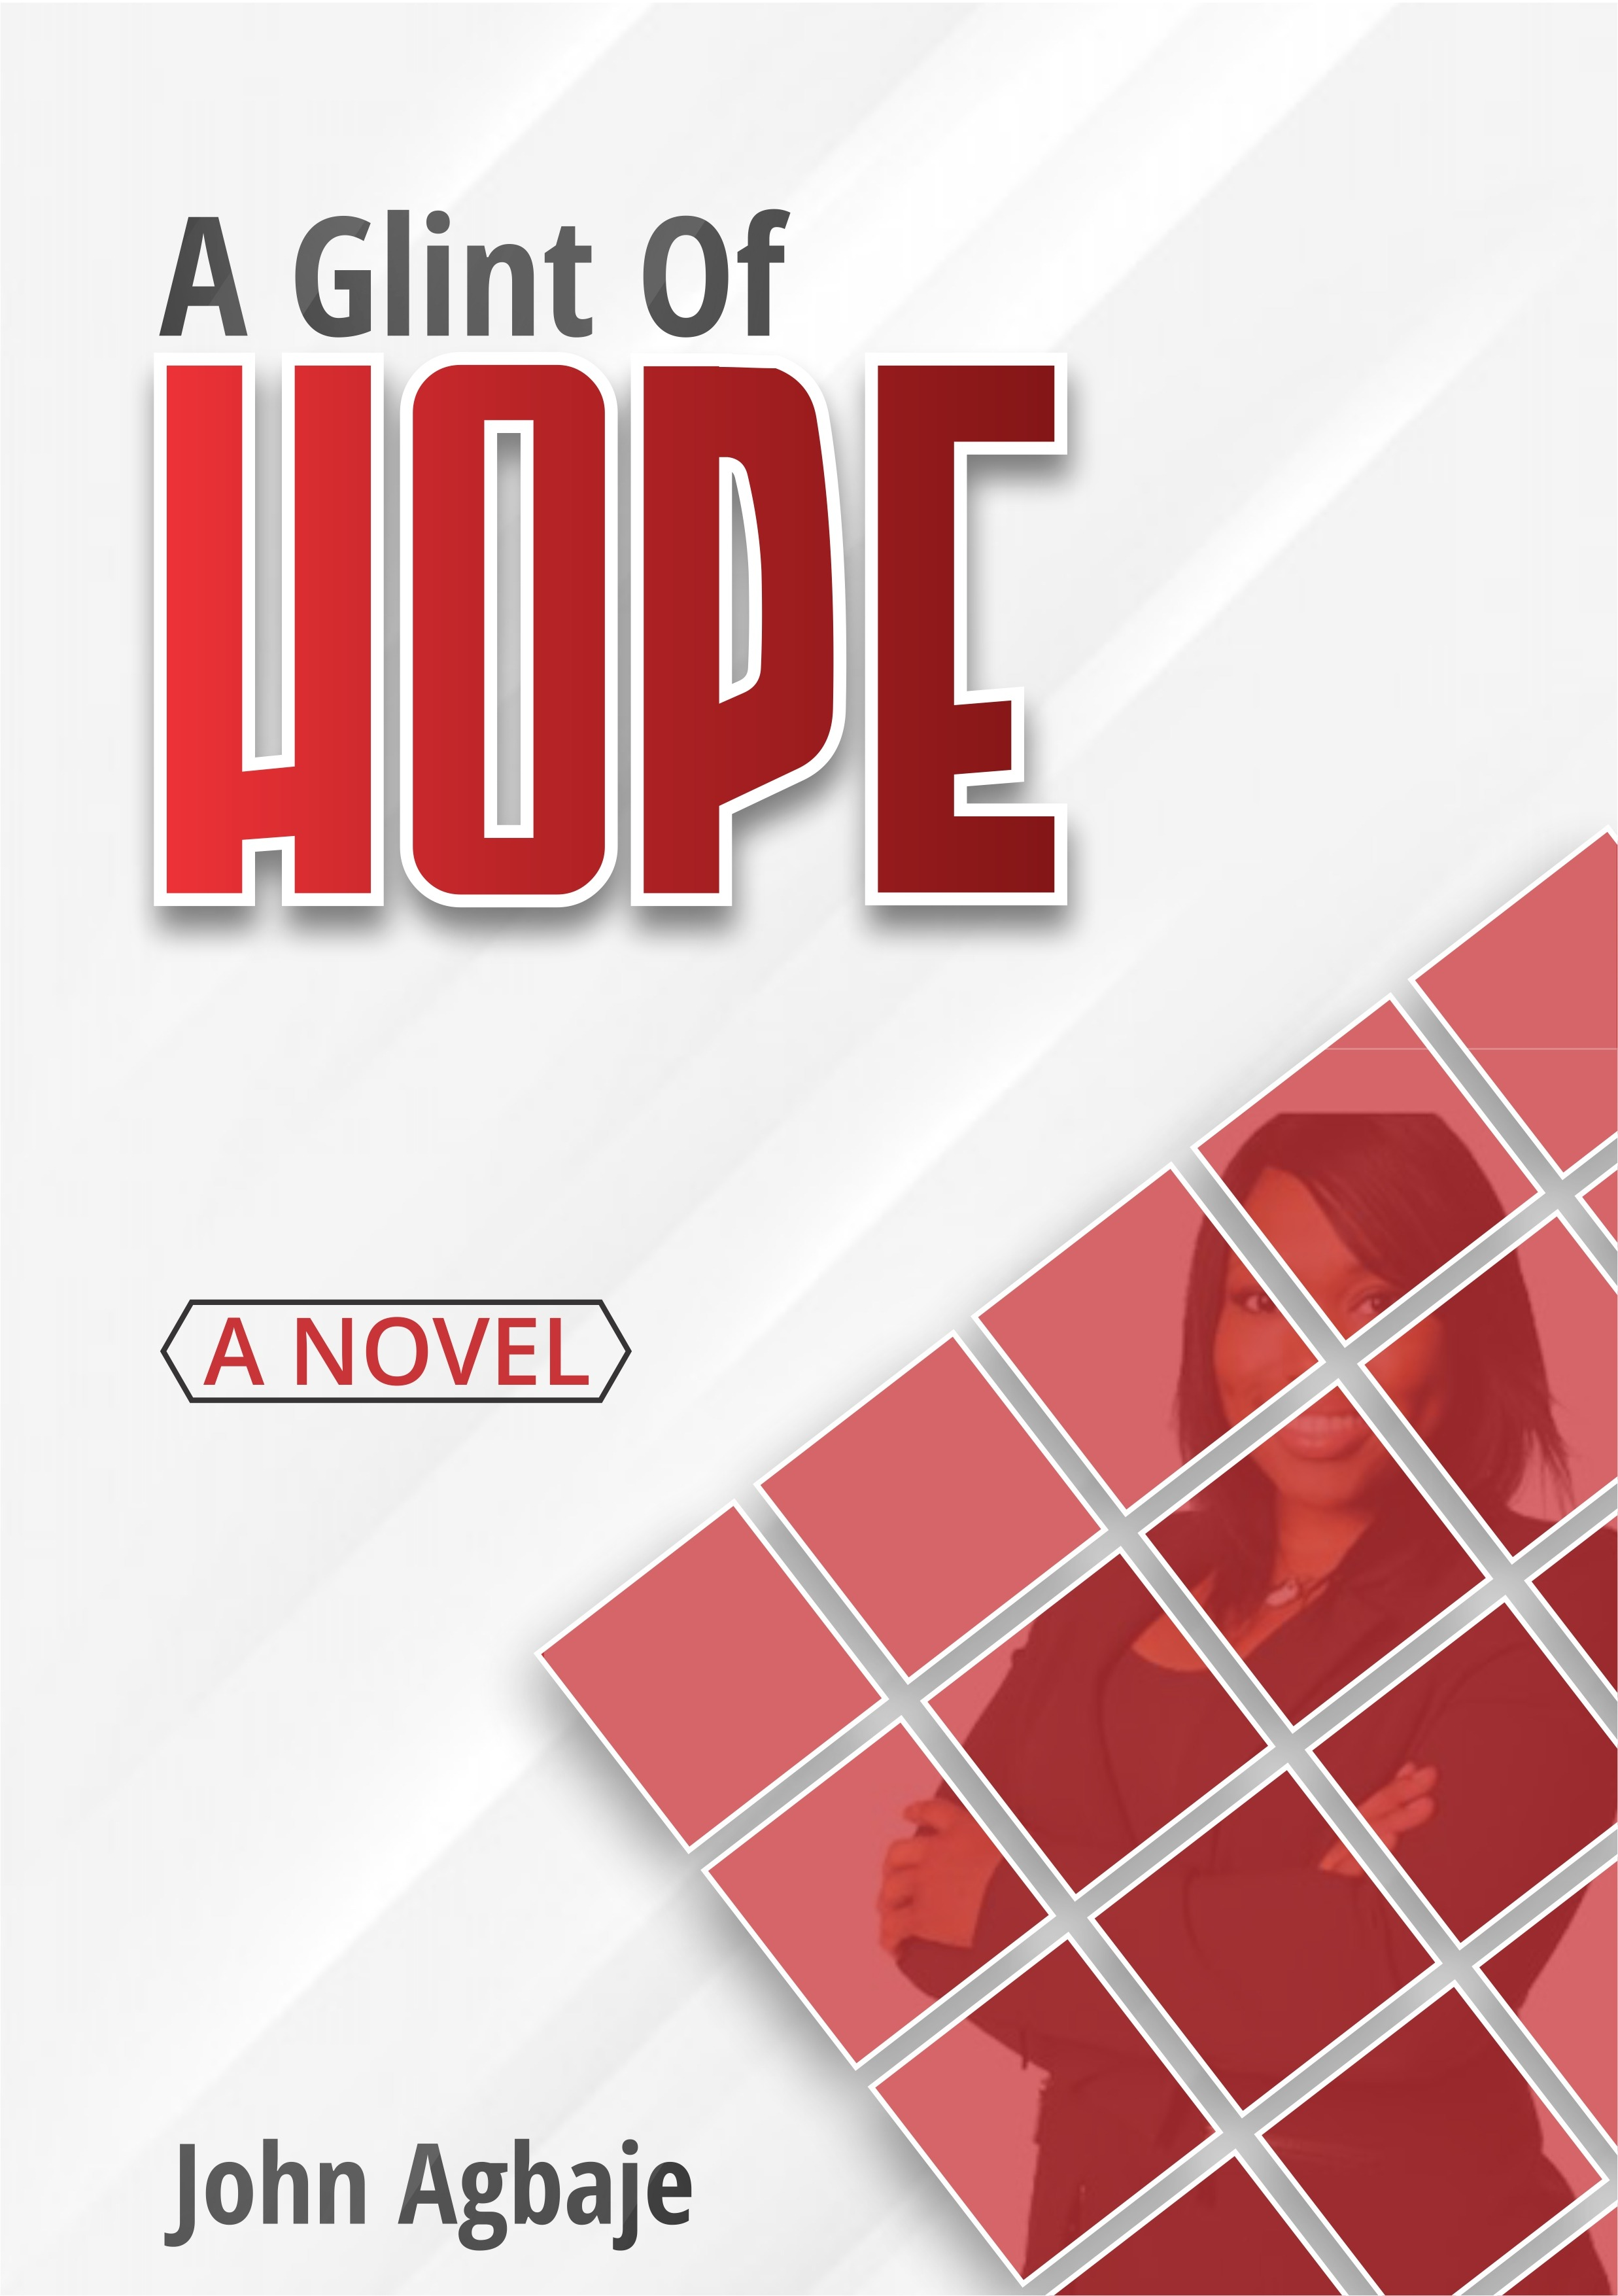 A GLINT OF HOPE (THE COMPLETE NOVEL)